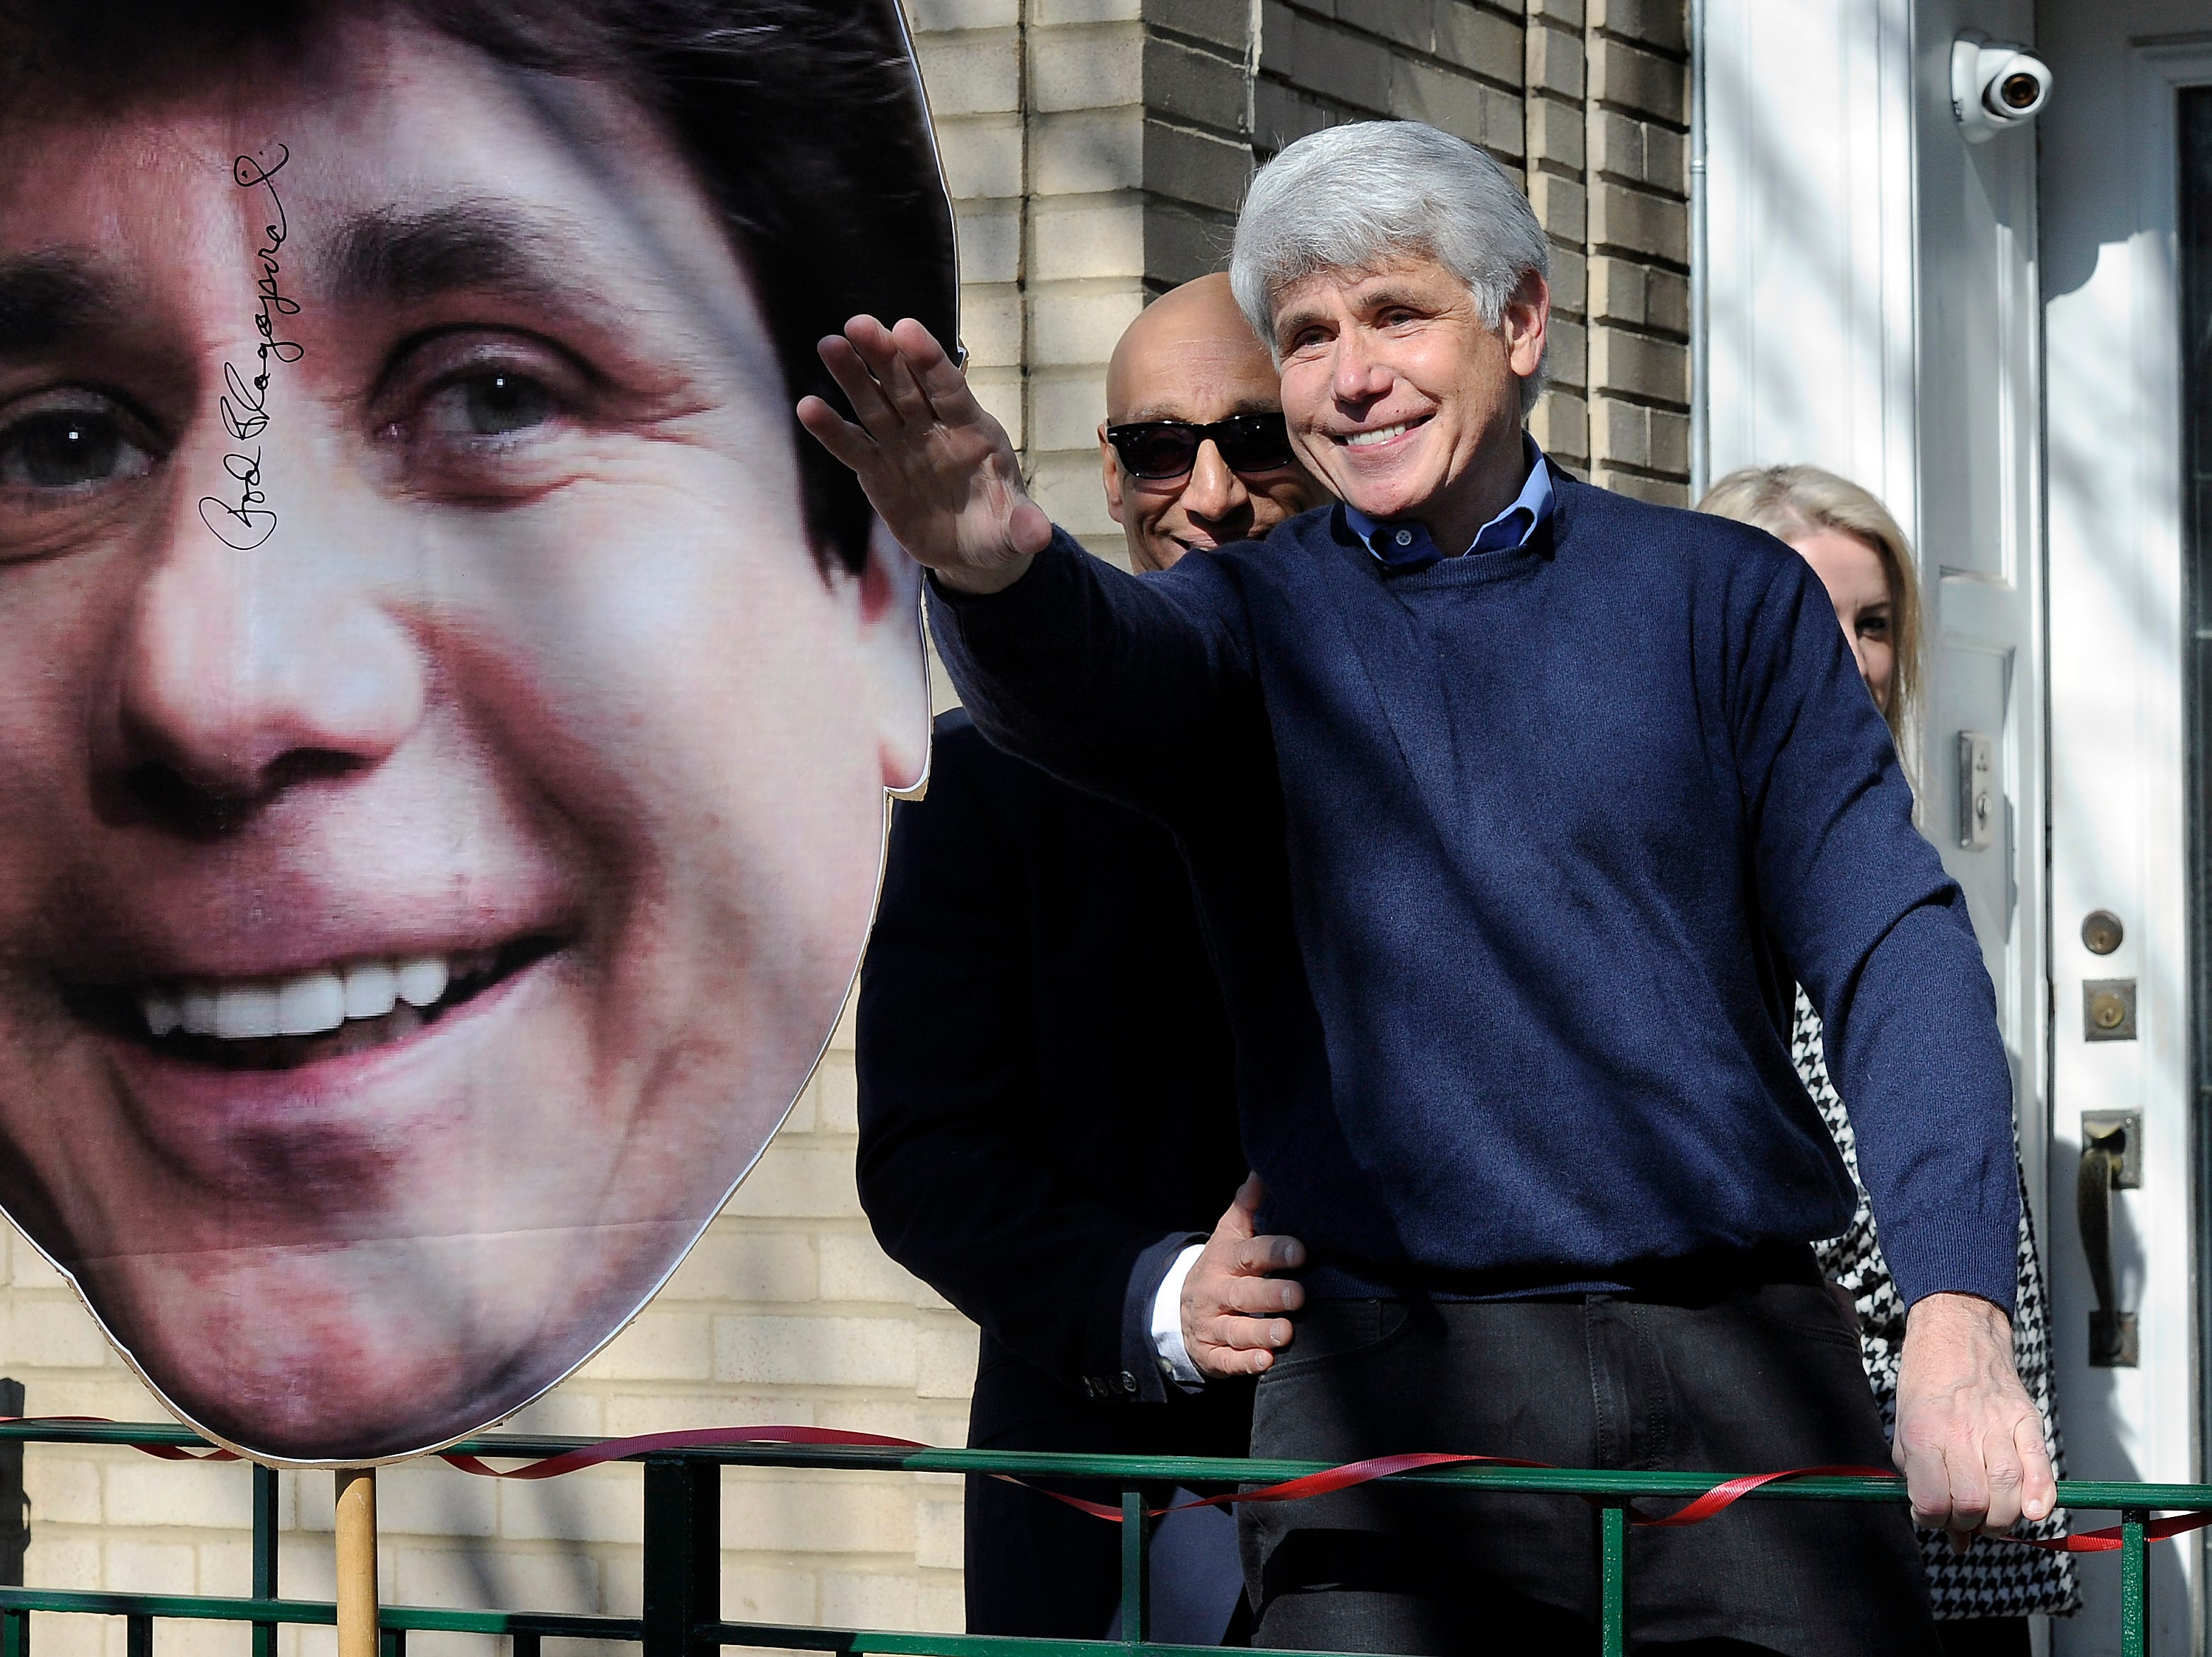 Blagojevich calling himself a political prisoner is  nuts,  Cooper says in heated interview